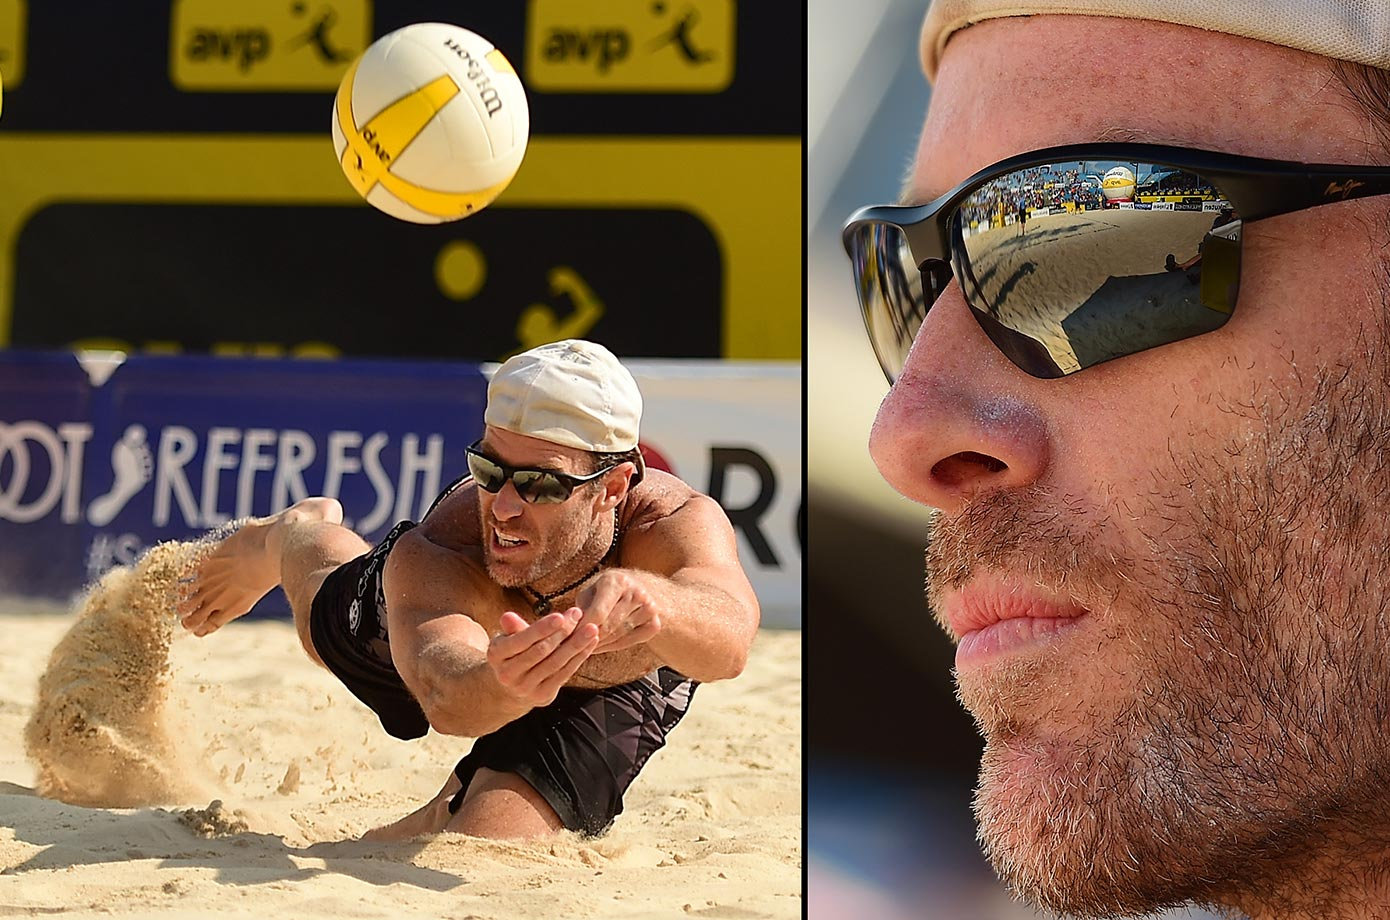 Johnny Hyden came up with big plays all weekend. He became one of the oldest champions on the AVP tour. He will turn 43 in October.